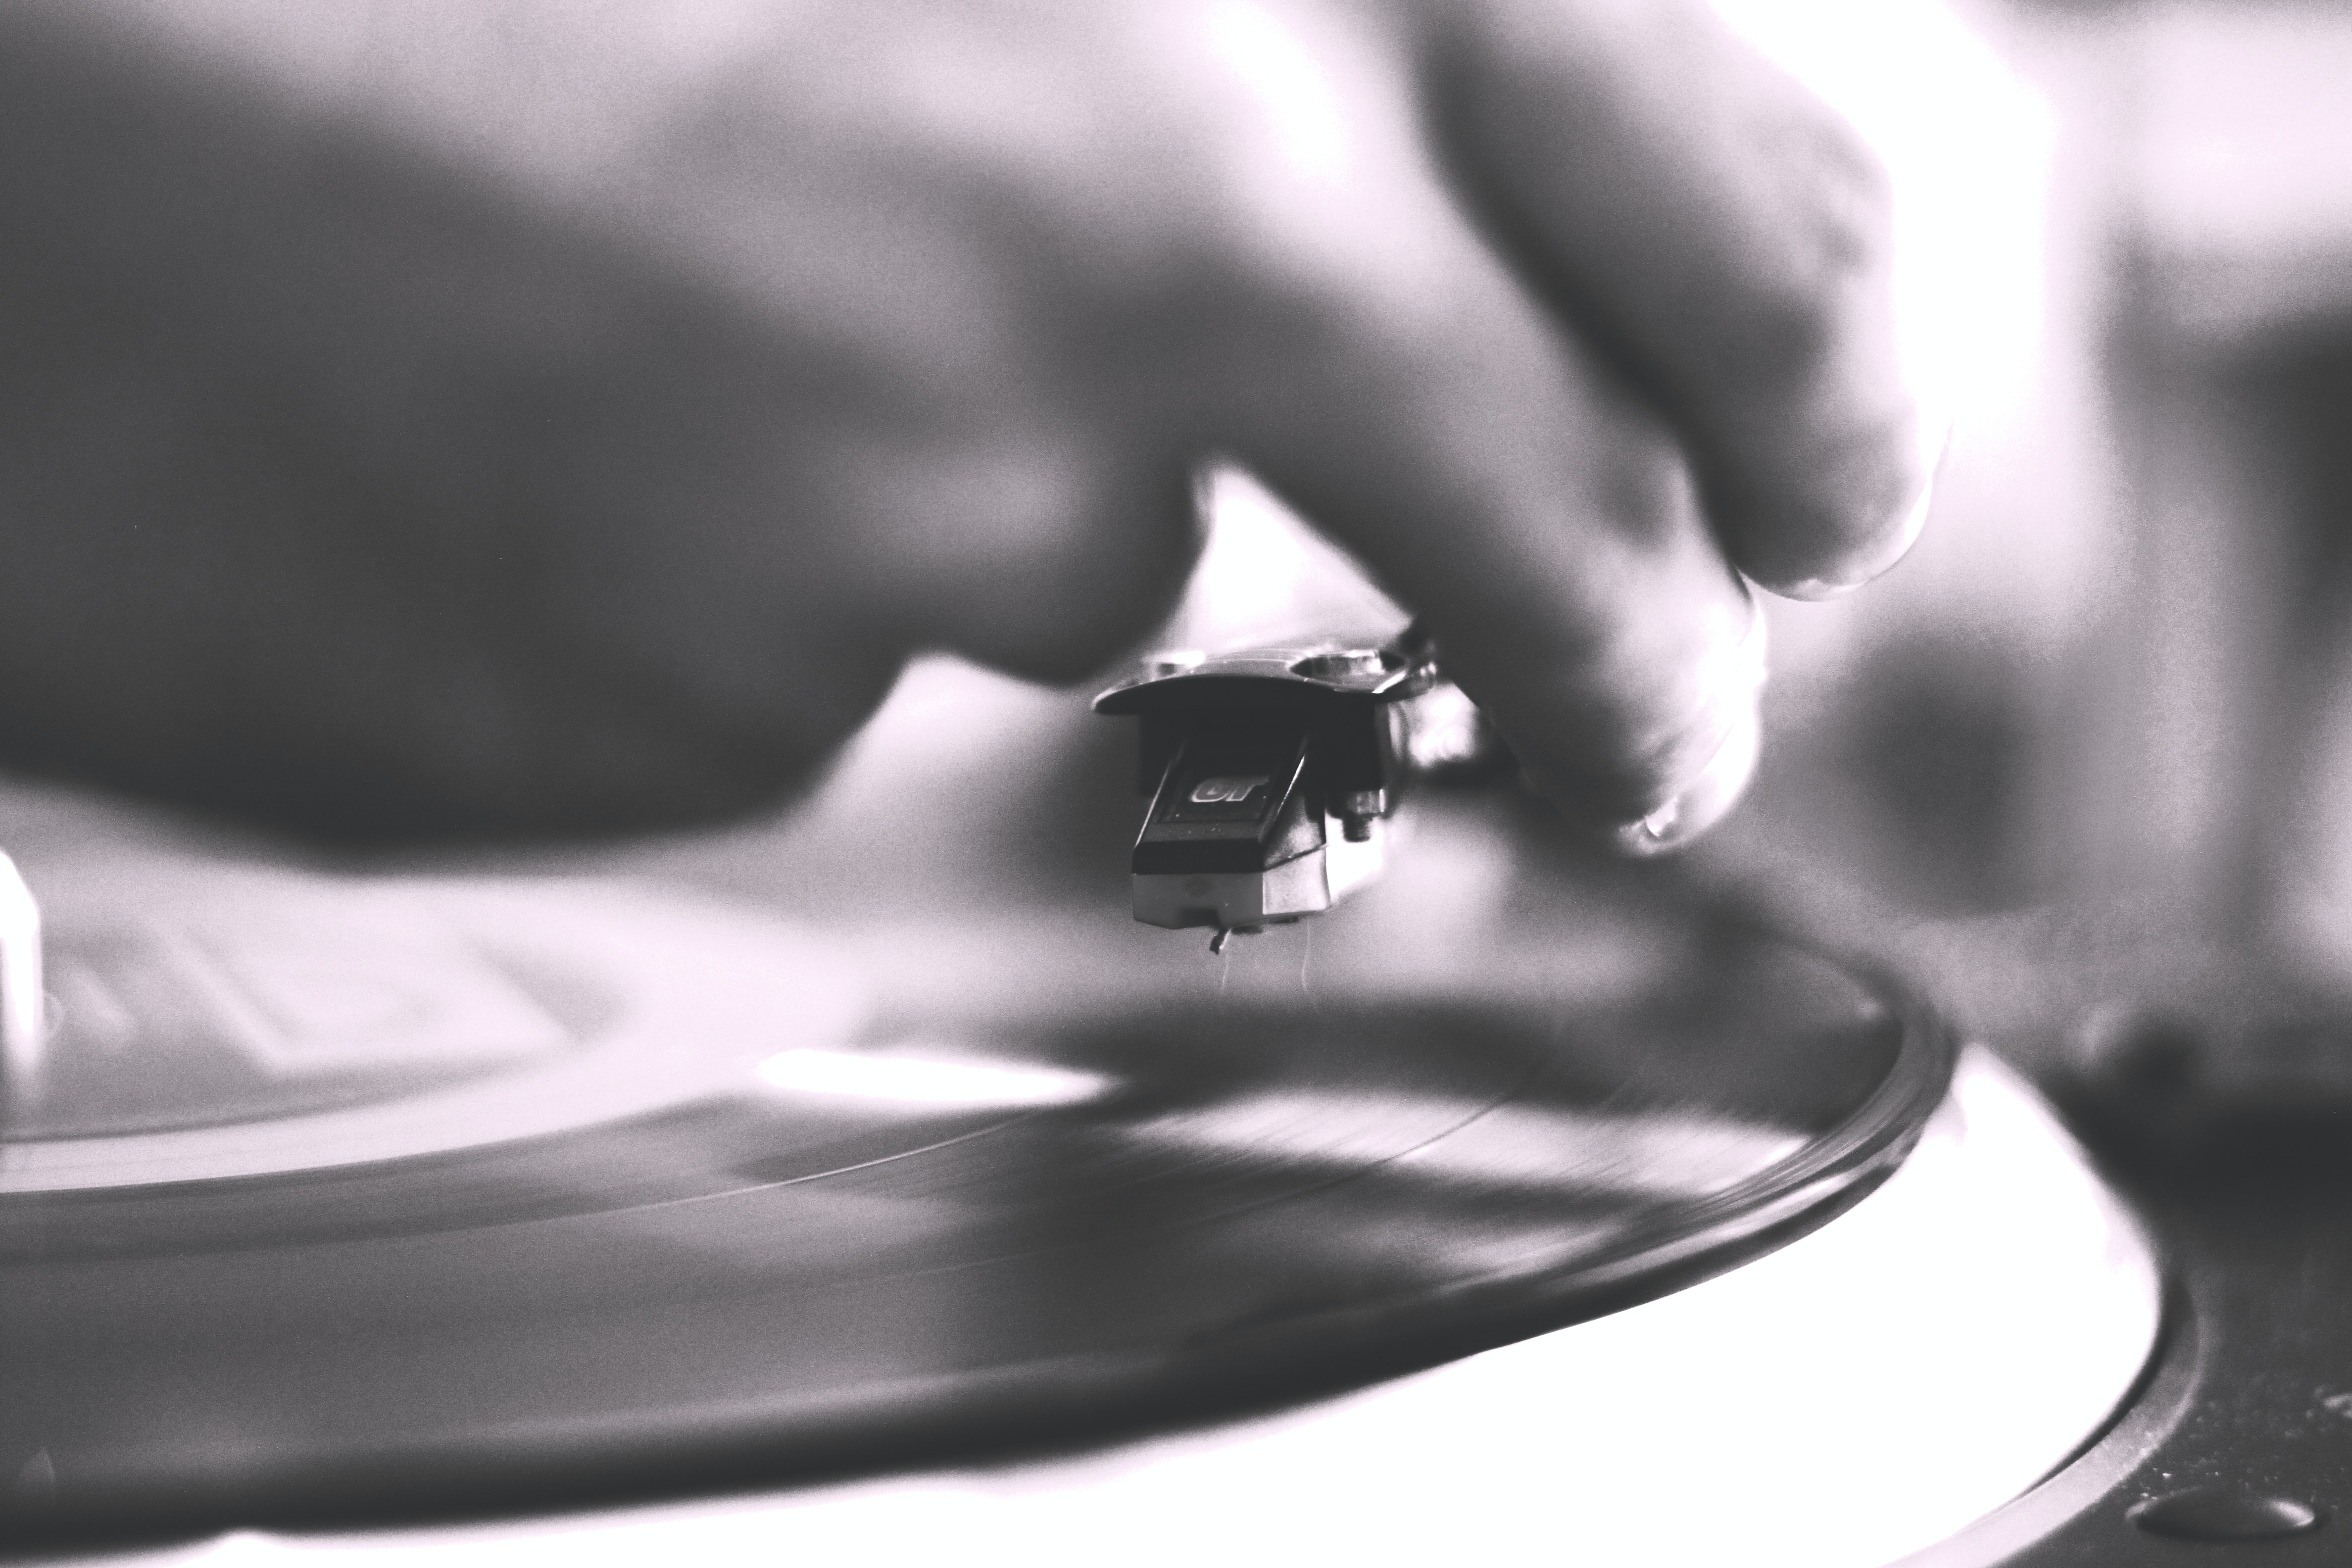 Unfocused black and white shot of hand putting needle on a record on a turntable